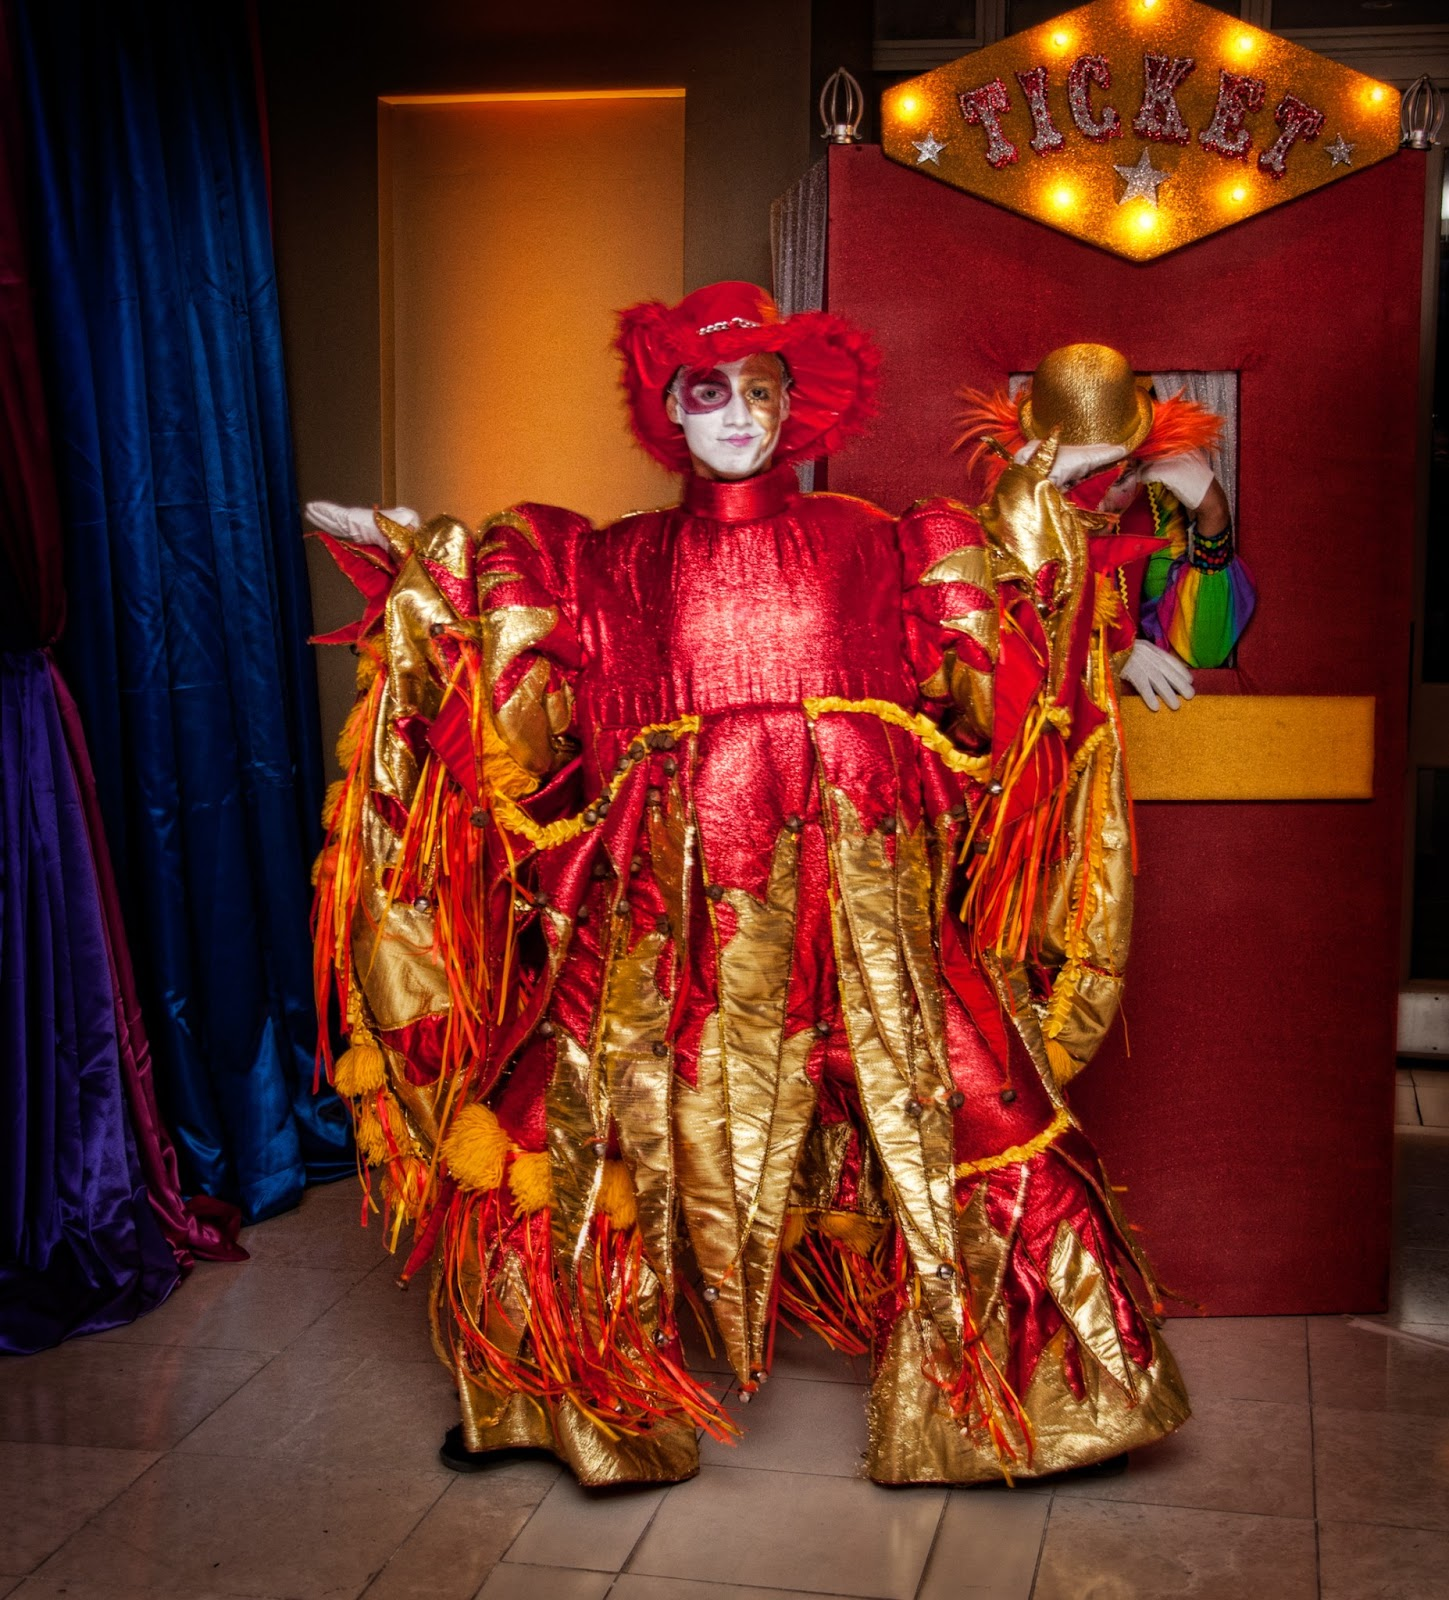 cirque du soleil human resource management Insights about company manager - cirque du soleil members on linkedin top companies human resources training manager at new york-new york hotel & casino stage management at cirque du soleil artistic coordinator at cirque du soleil.